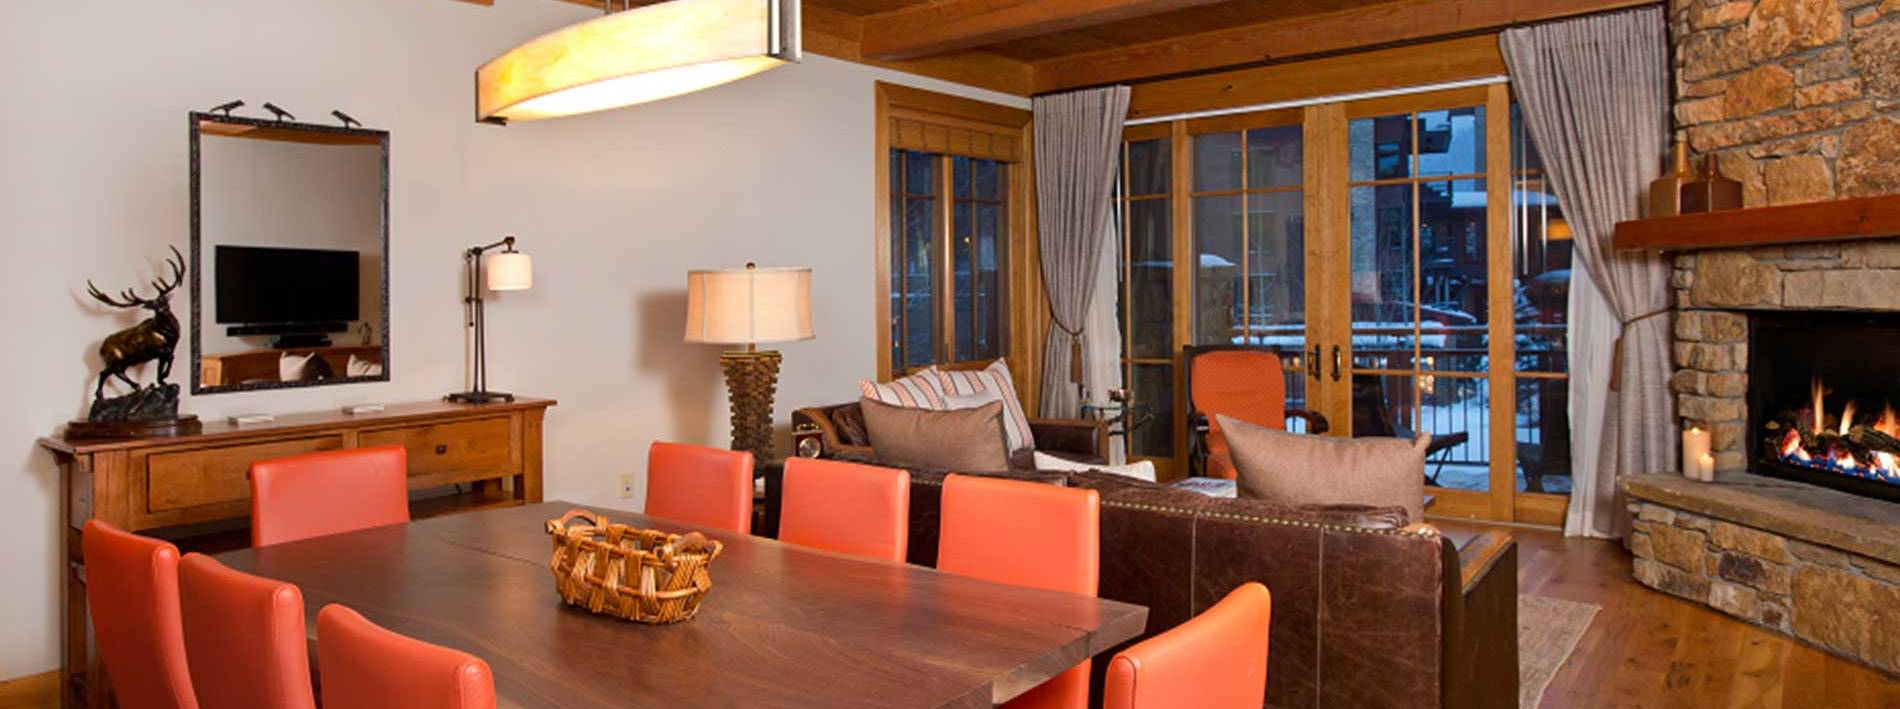 Kitchen table in this Jackson Hole private home rental